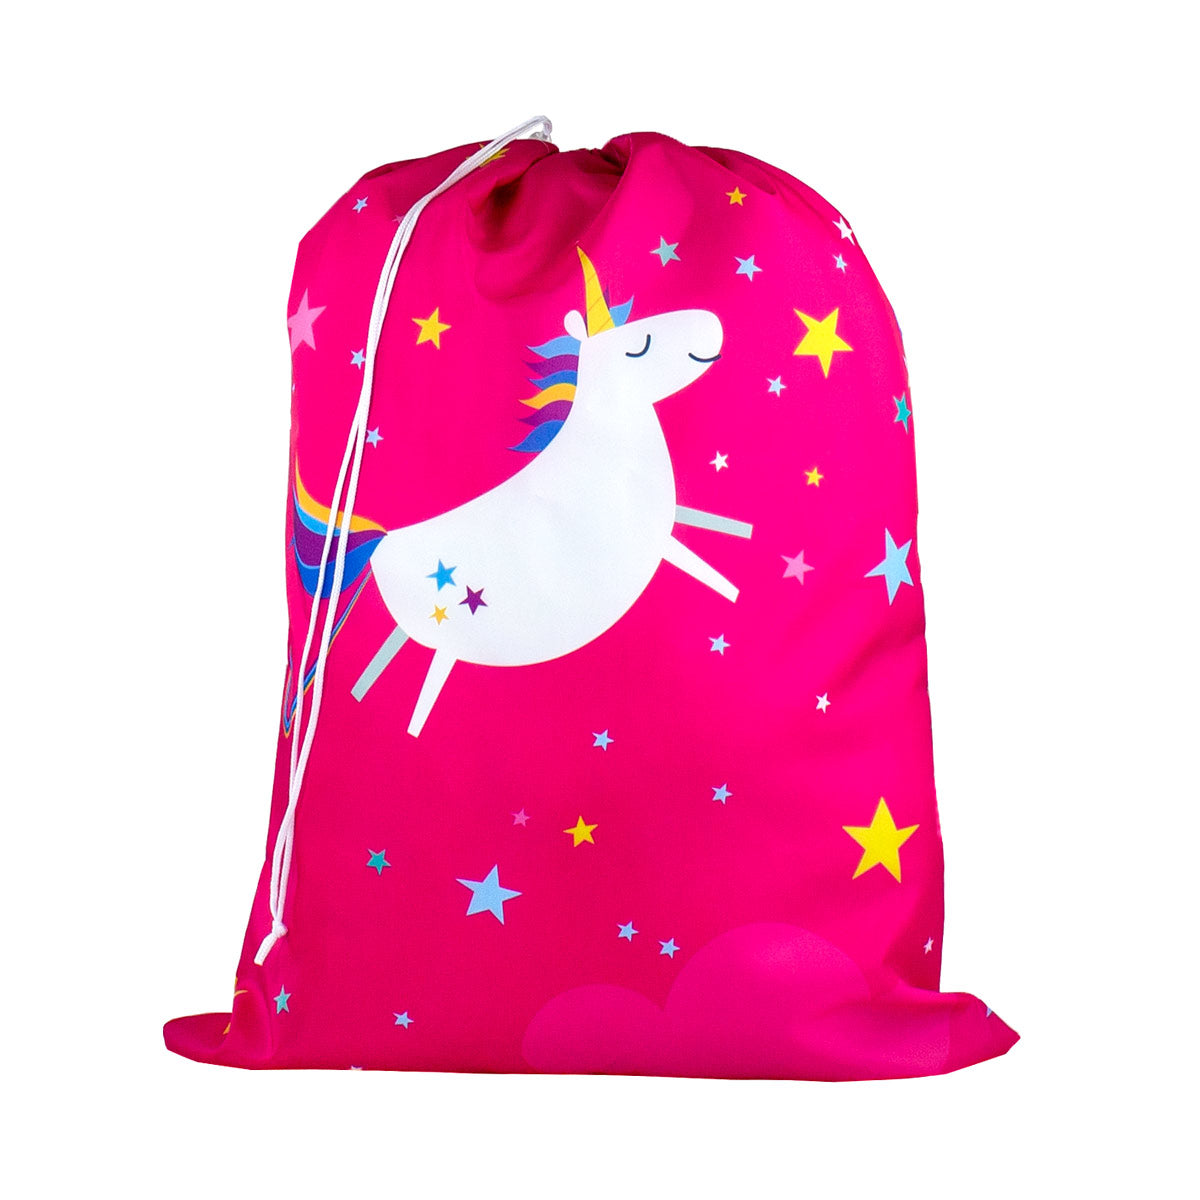 Designer Laundry Bag - Unicorn Poo